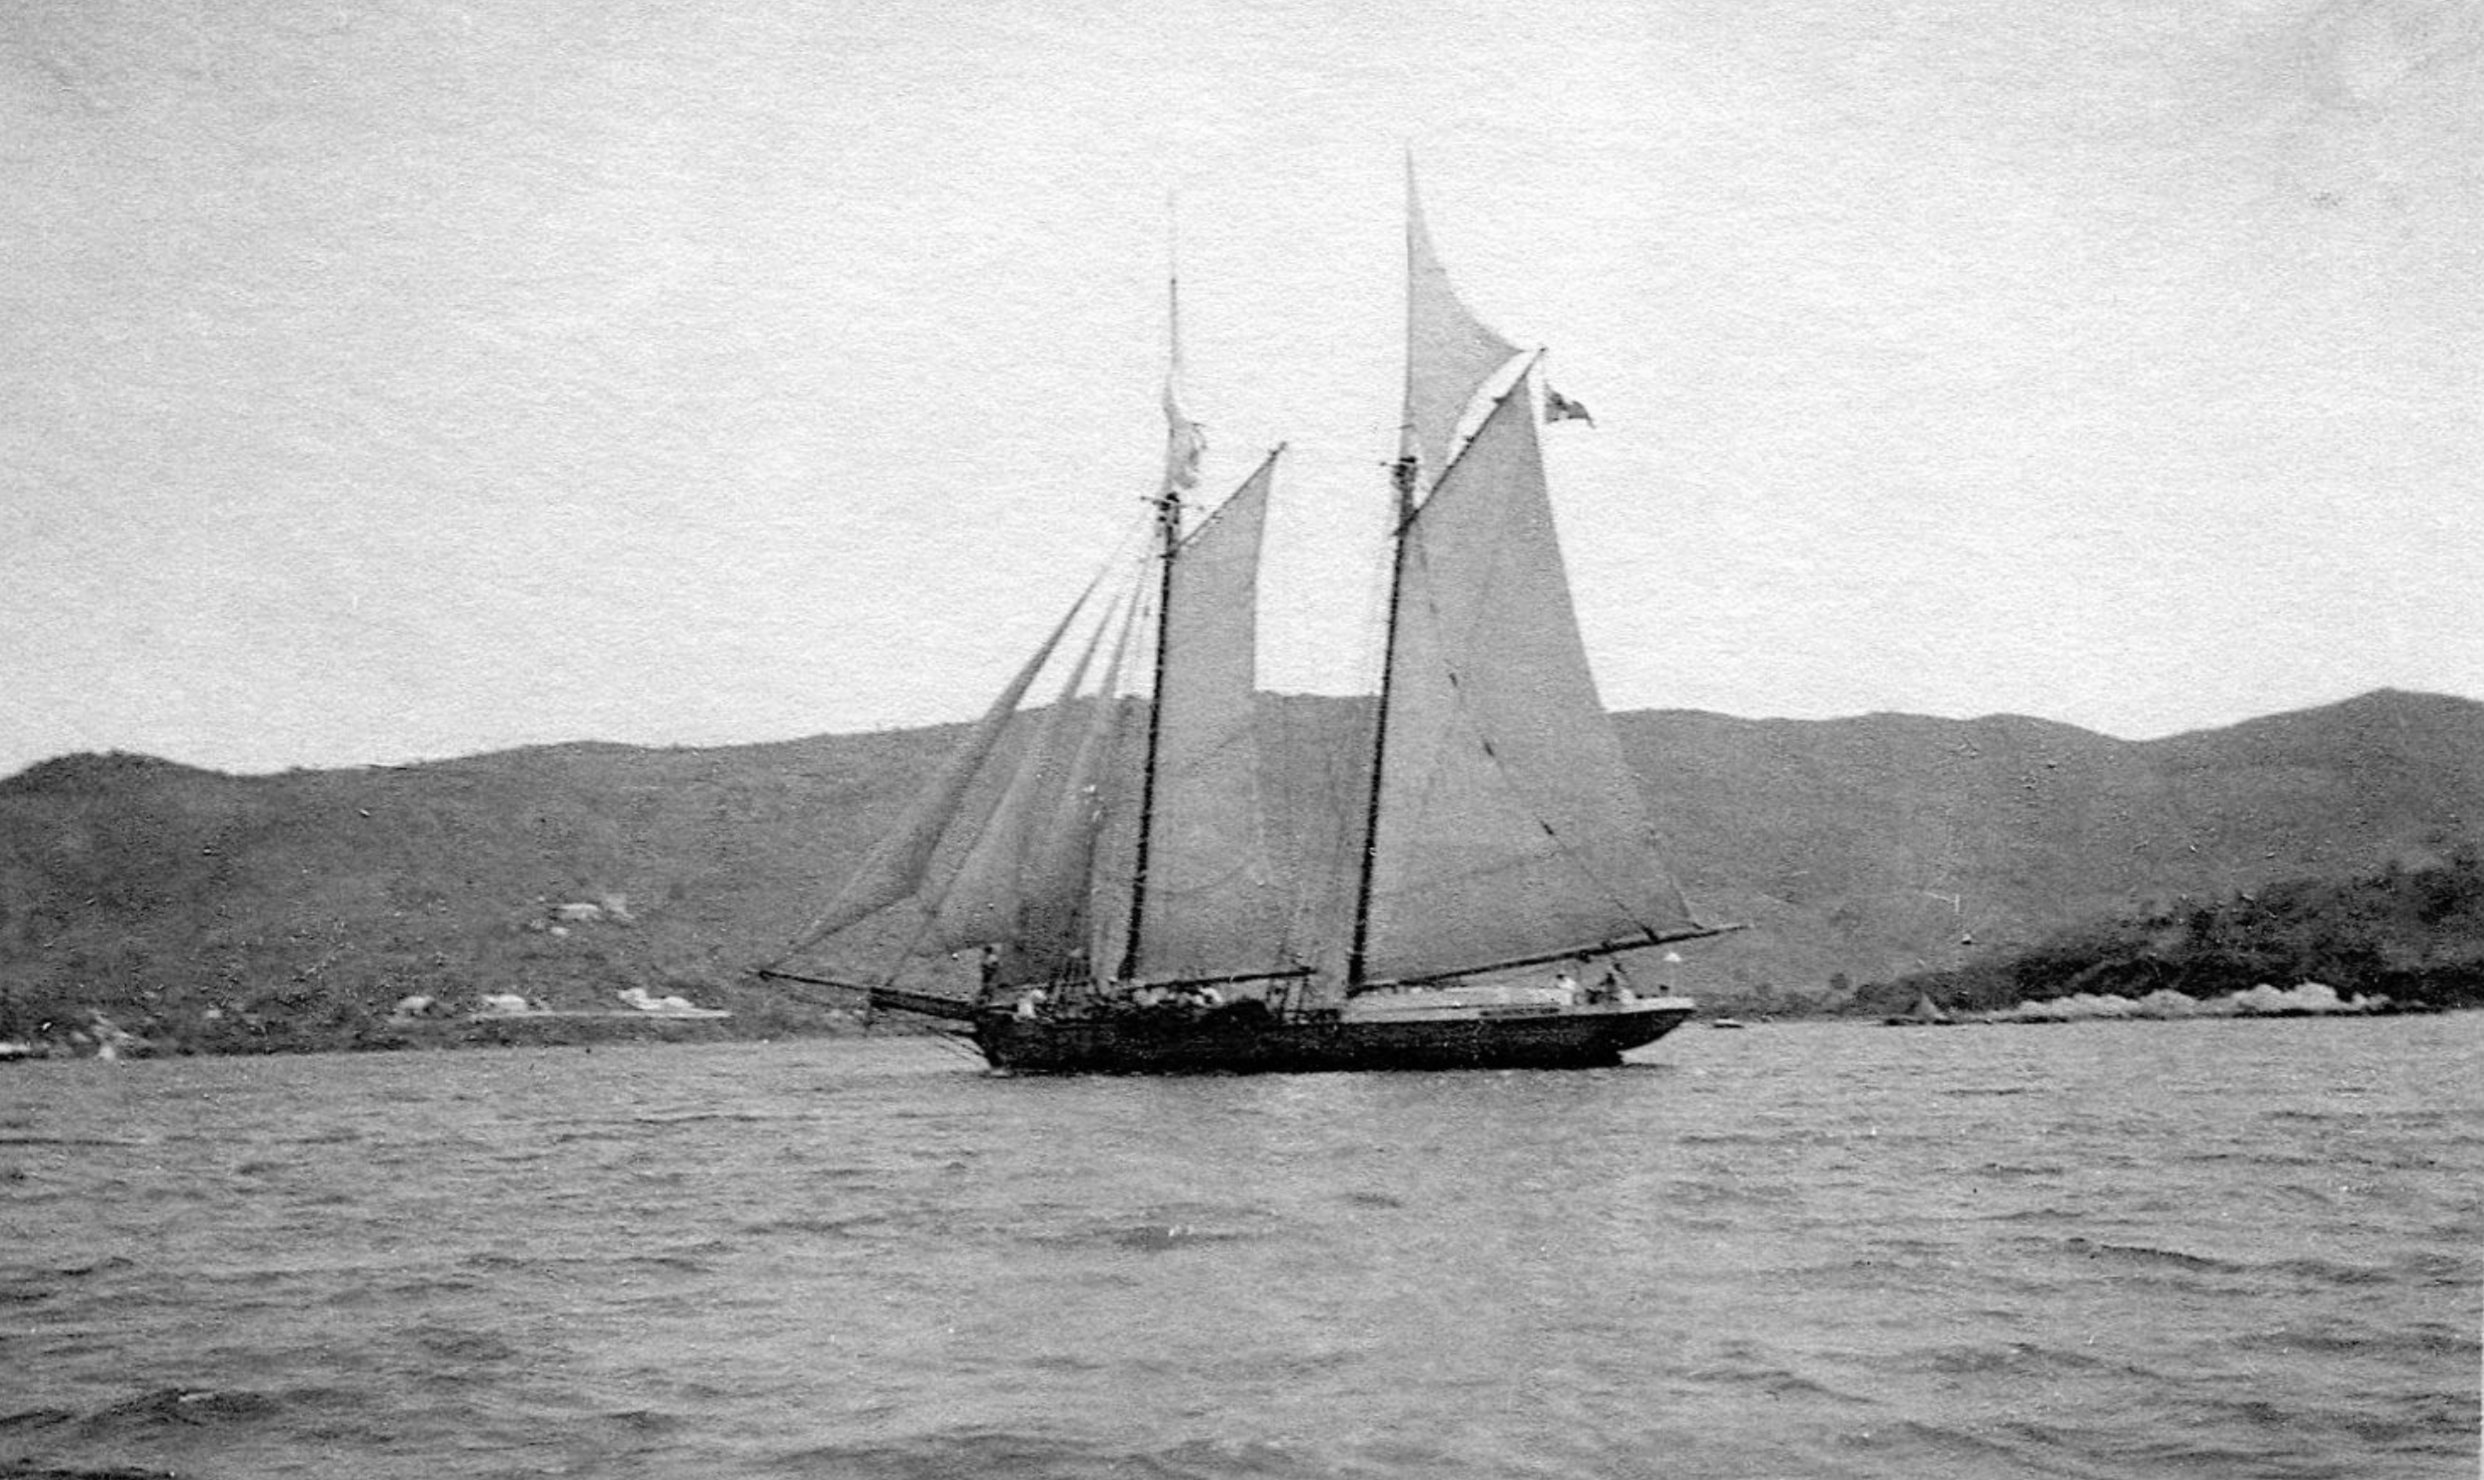 schooner, vigilant in St. Thomas, Danish West Indies